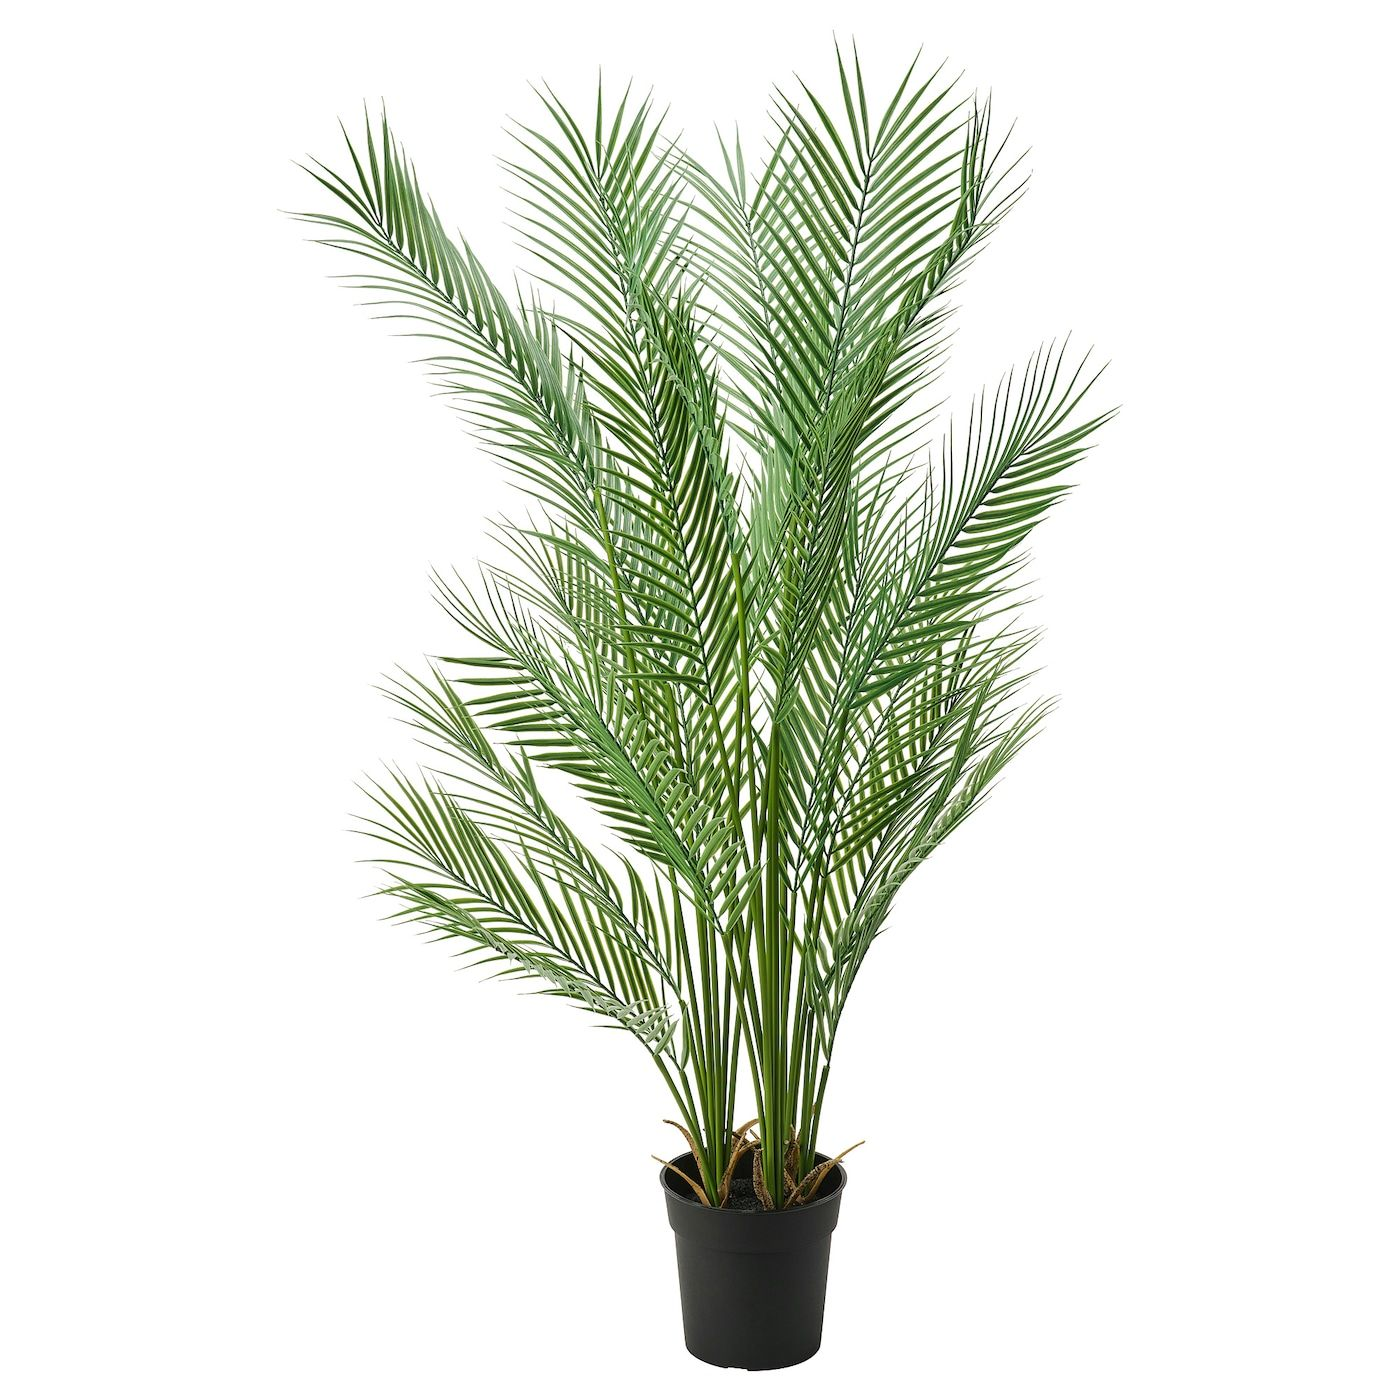 Fejka Artificial Potted Plant Indoor Outdoor Palm Ikea In 2020 Artificial Potted Plants Ikea Plants Fake Plants Decor